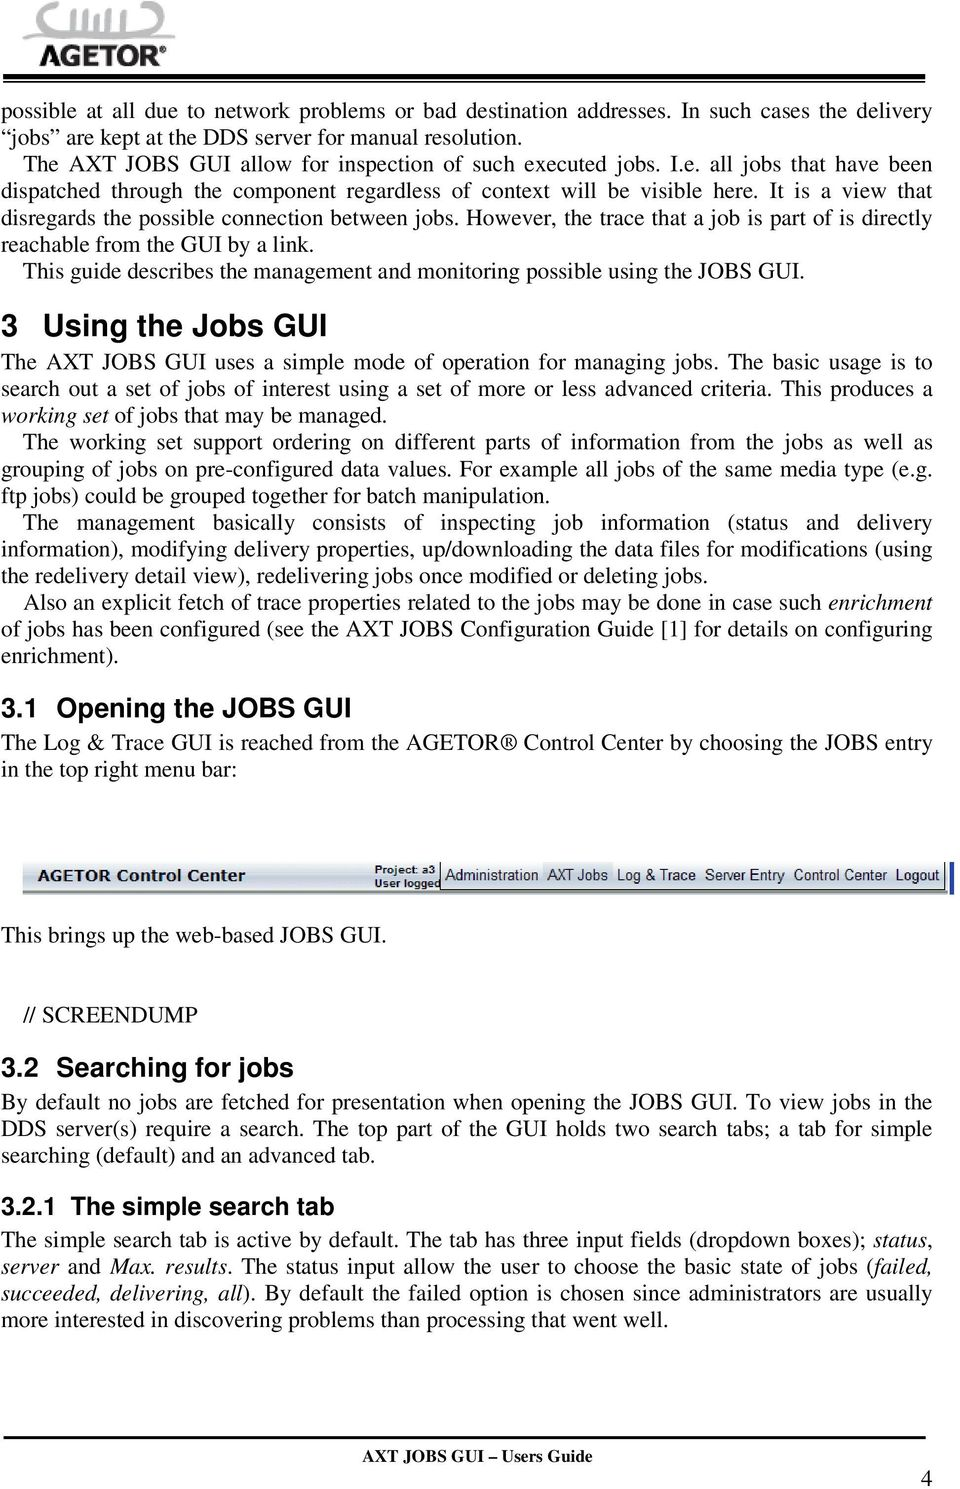 It is a view that disregards the possible connection between jobs. However, the trace that a job is part of is directly reachable from the GUI by a link.